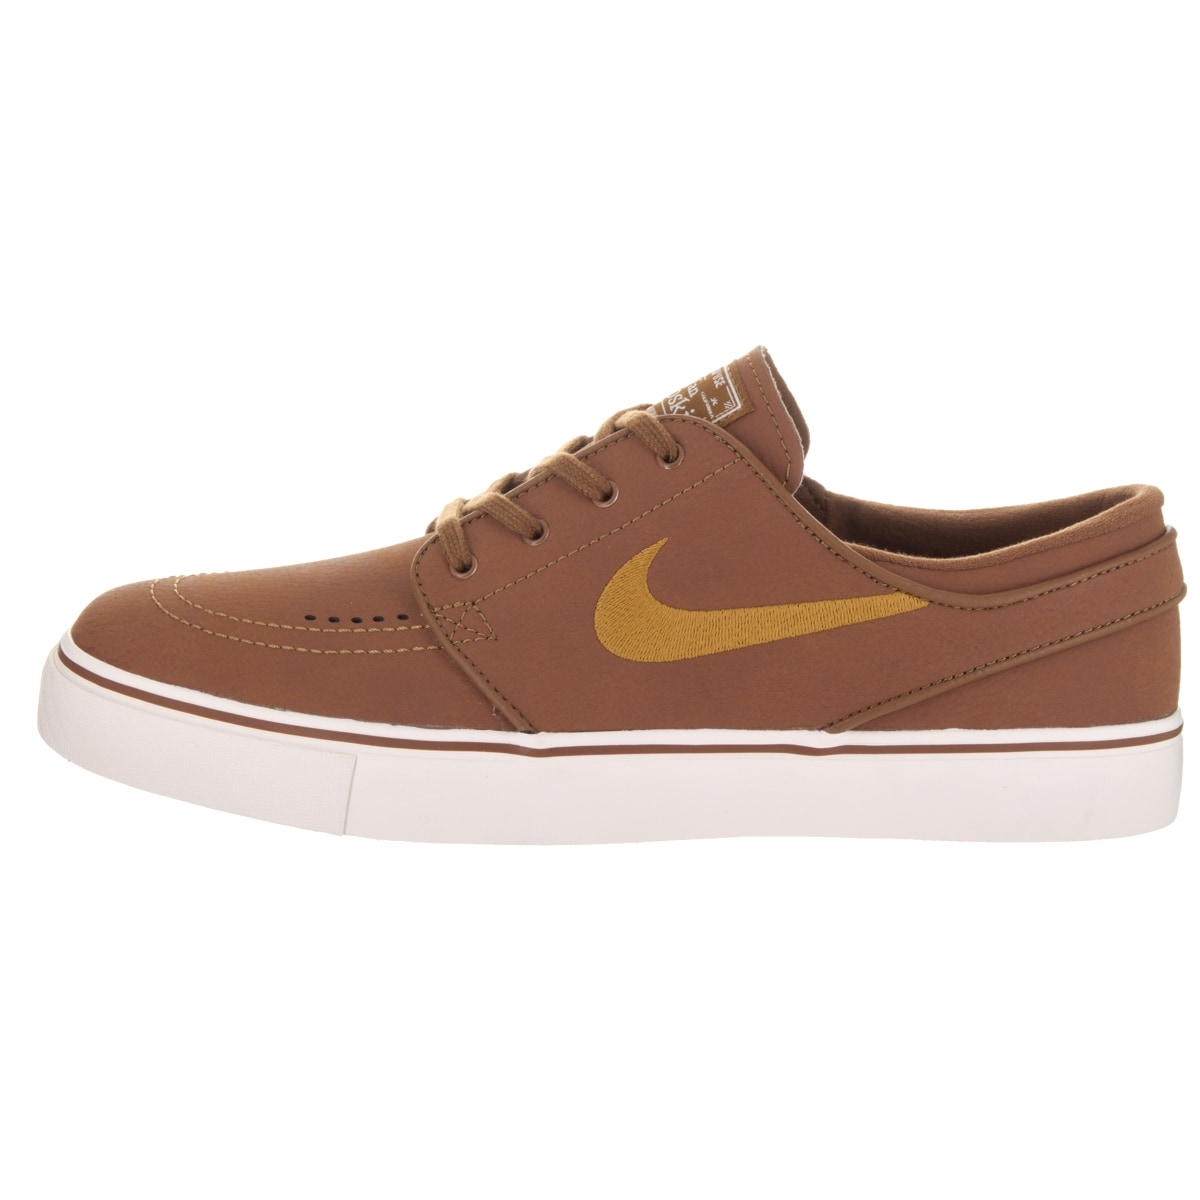 best website 9bd15 d2bf7 Shop Nike Men s Zoom Stefan Janoski L Brown Leather Skate Shoes - Free  Shipping Today - Overstock - 14084027